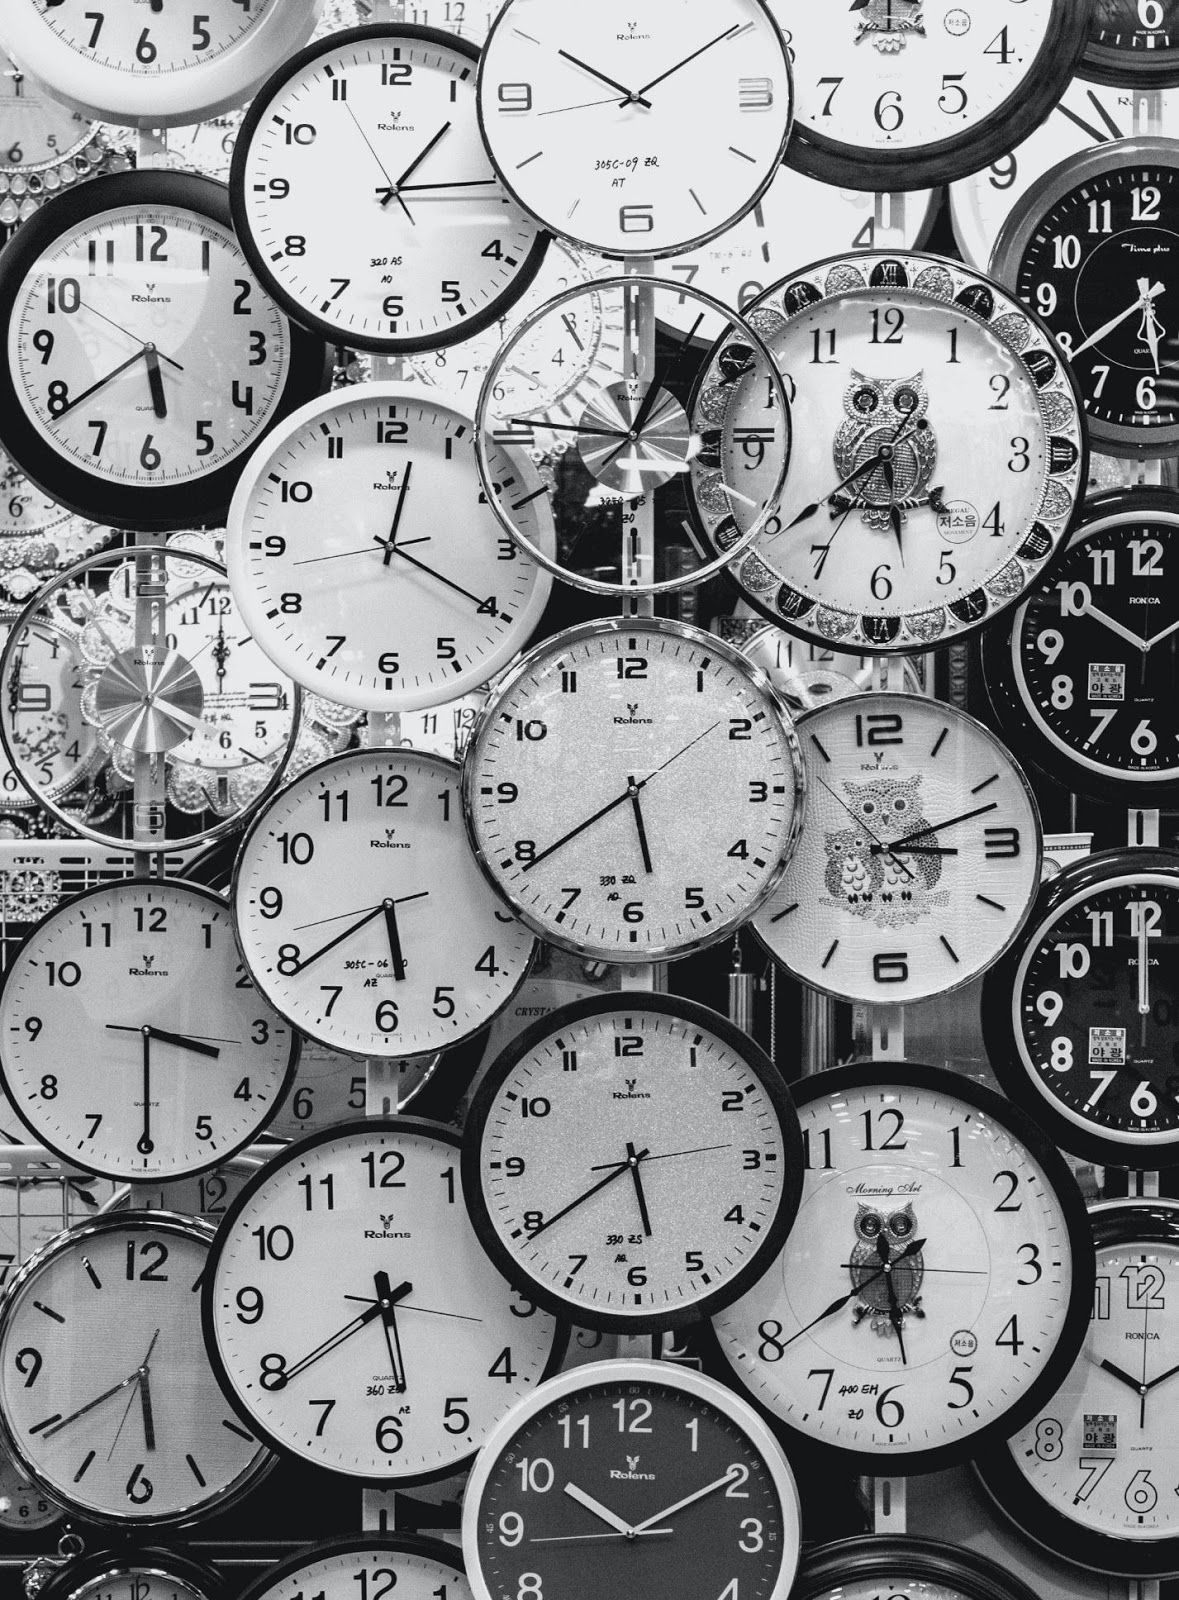 clocks to demonstrate Asynchronous timing